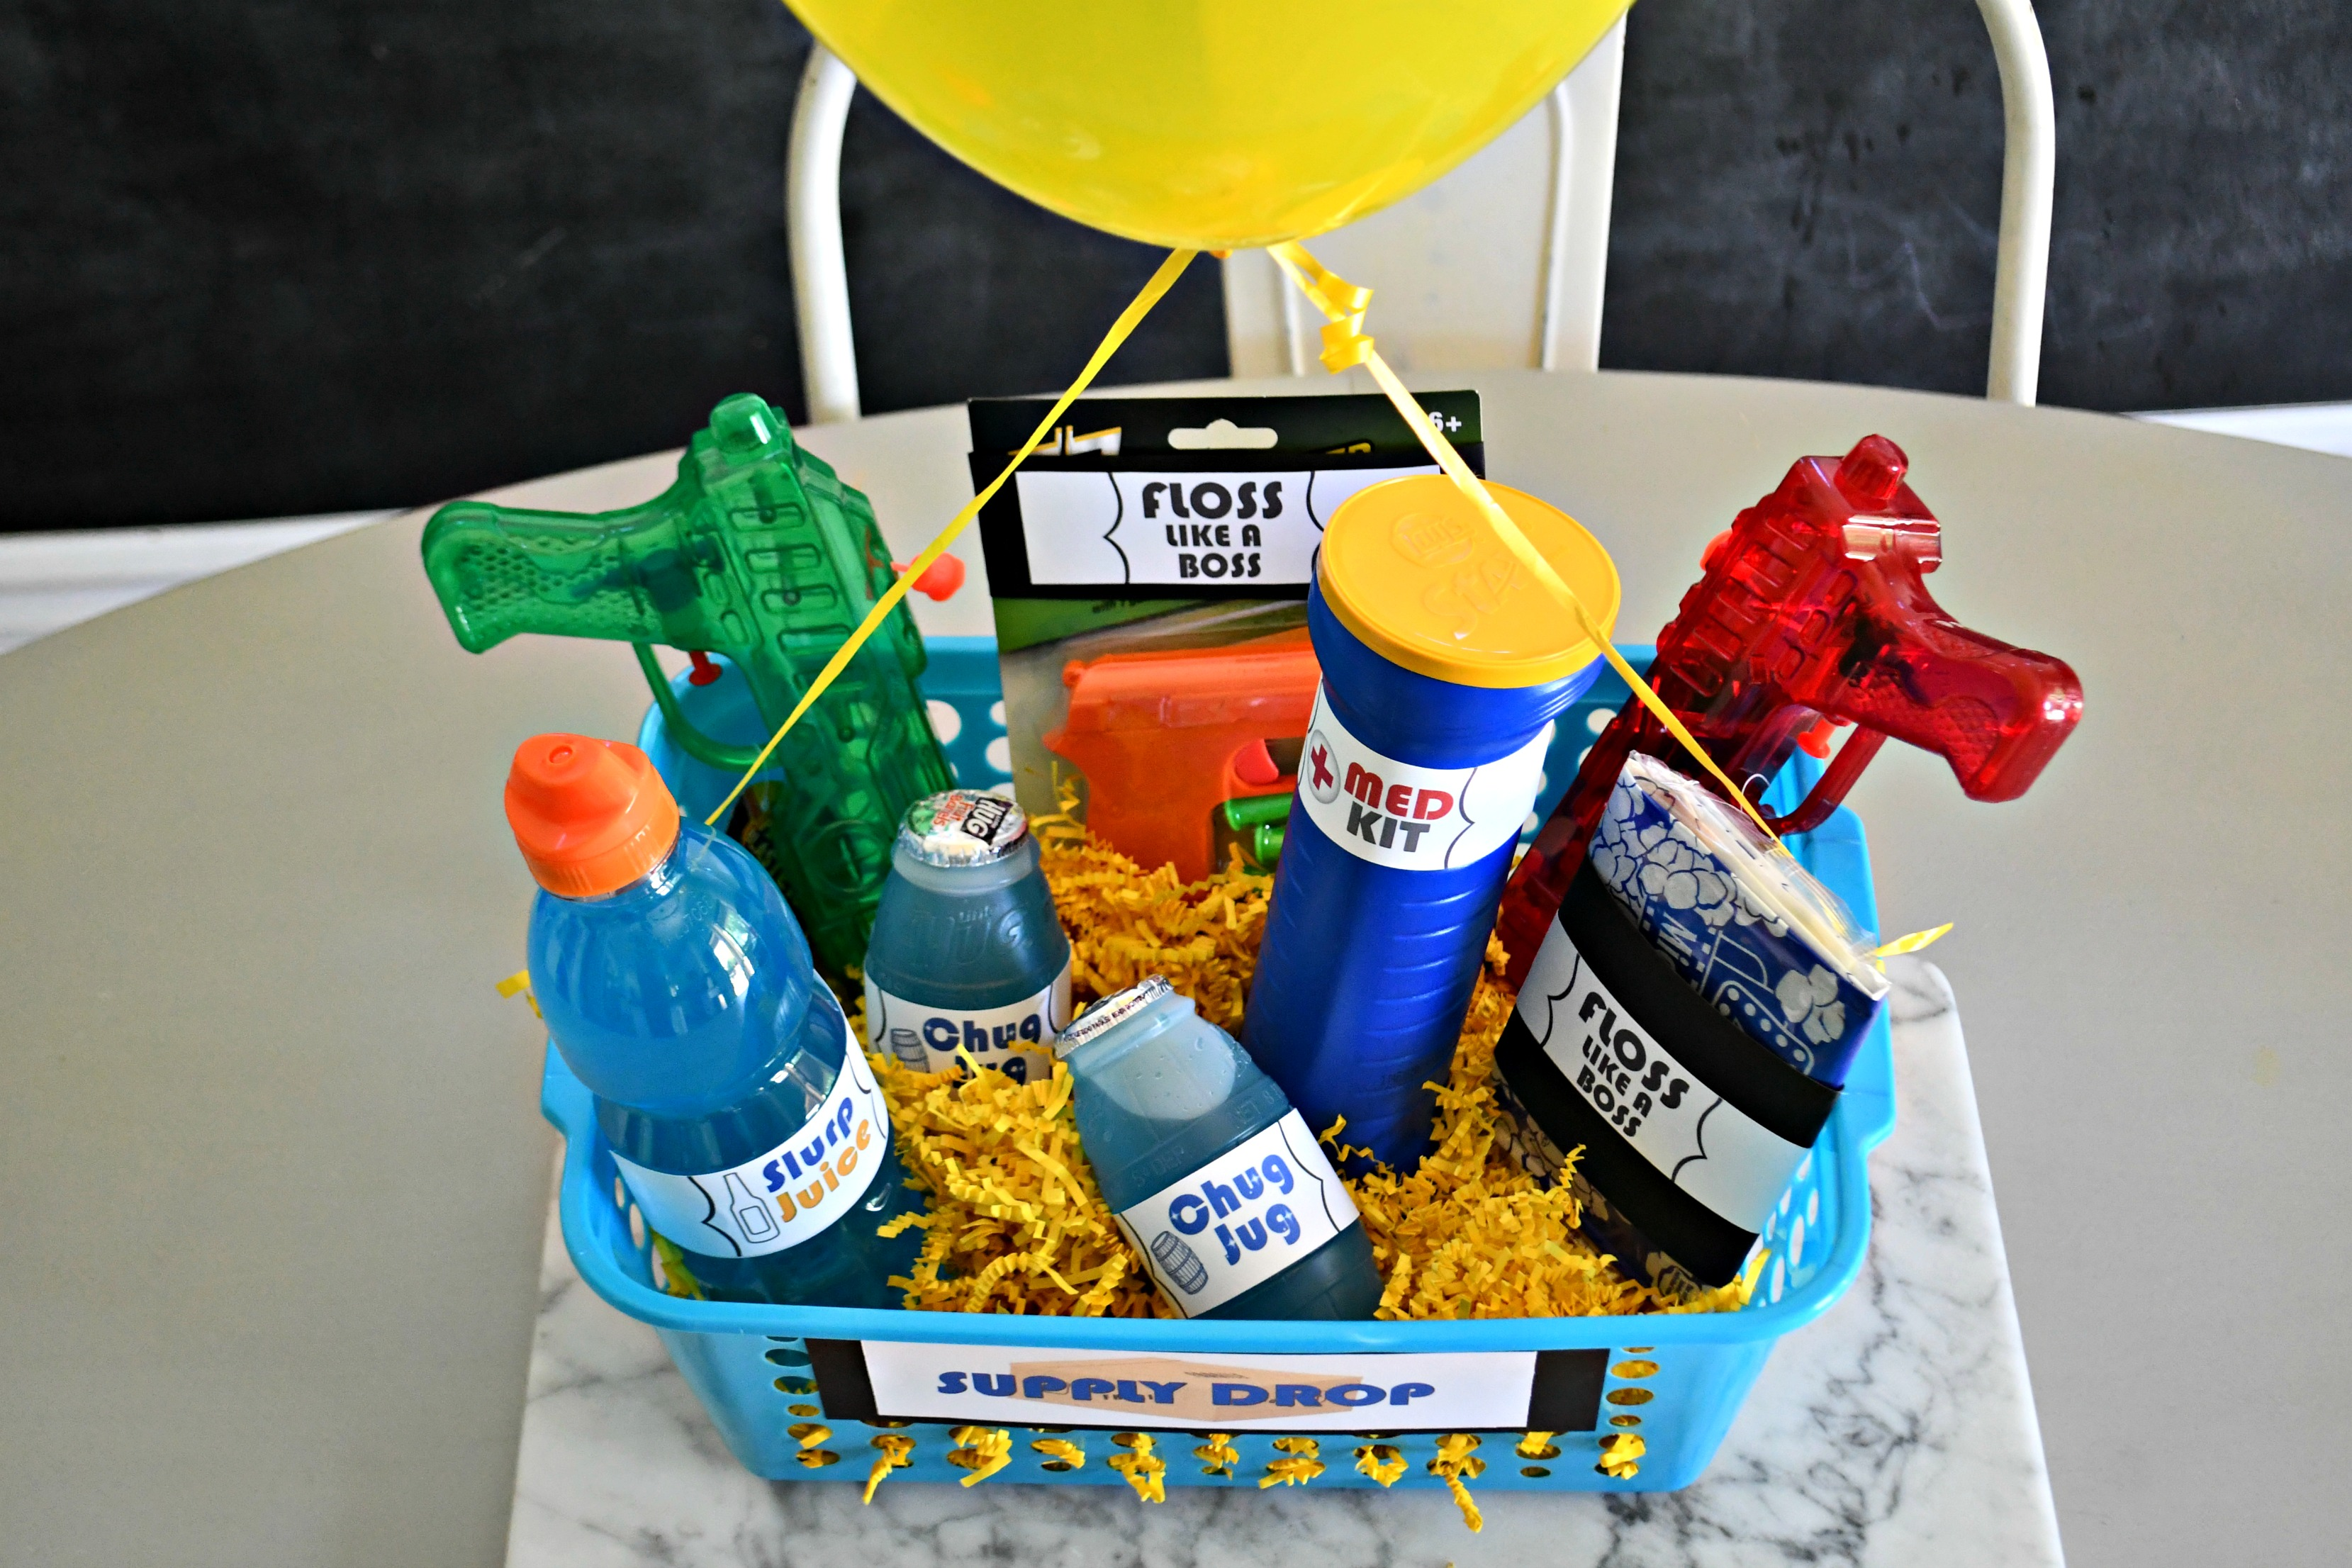 DIY Dollar Tree Fortnite Gift Basket in the supply drop basket with the balloon attached